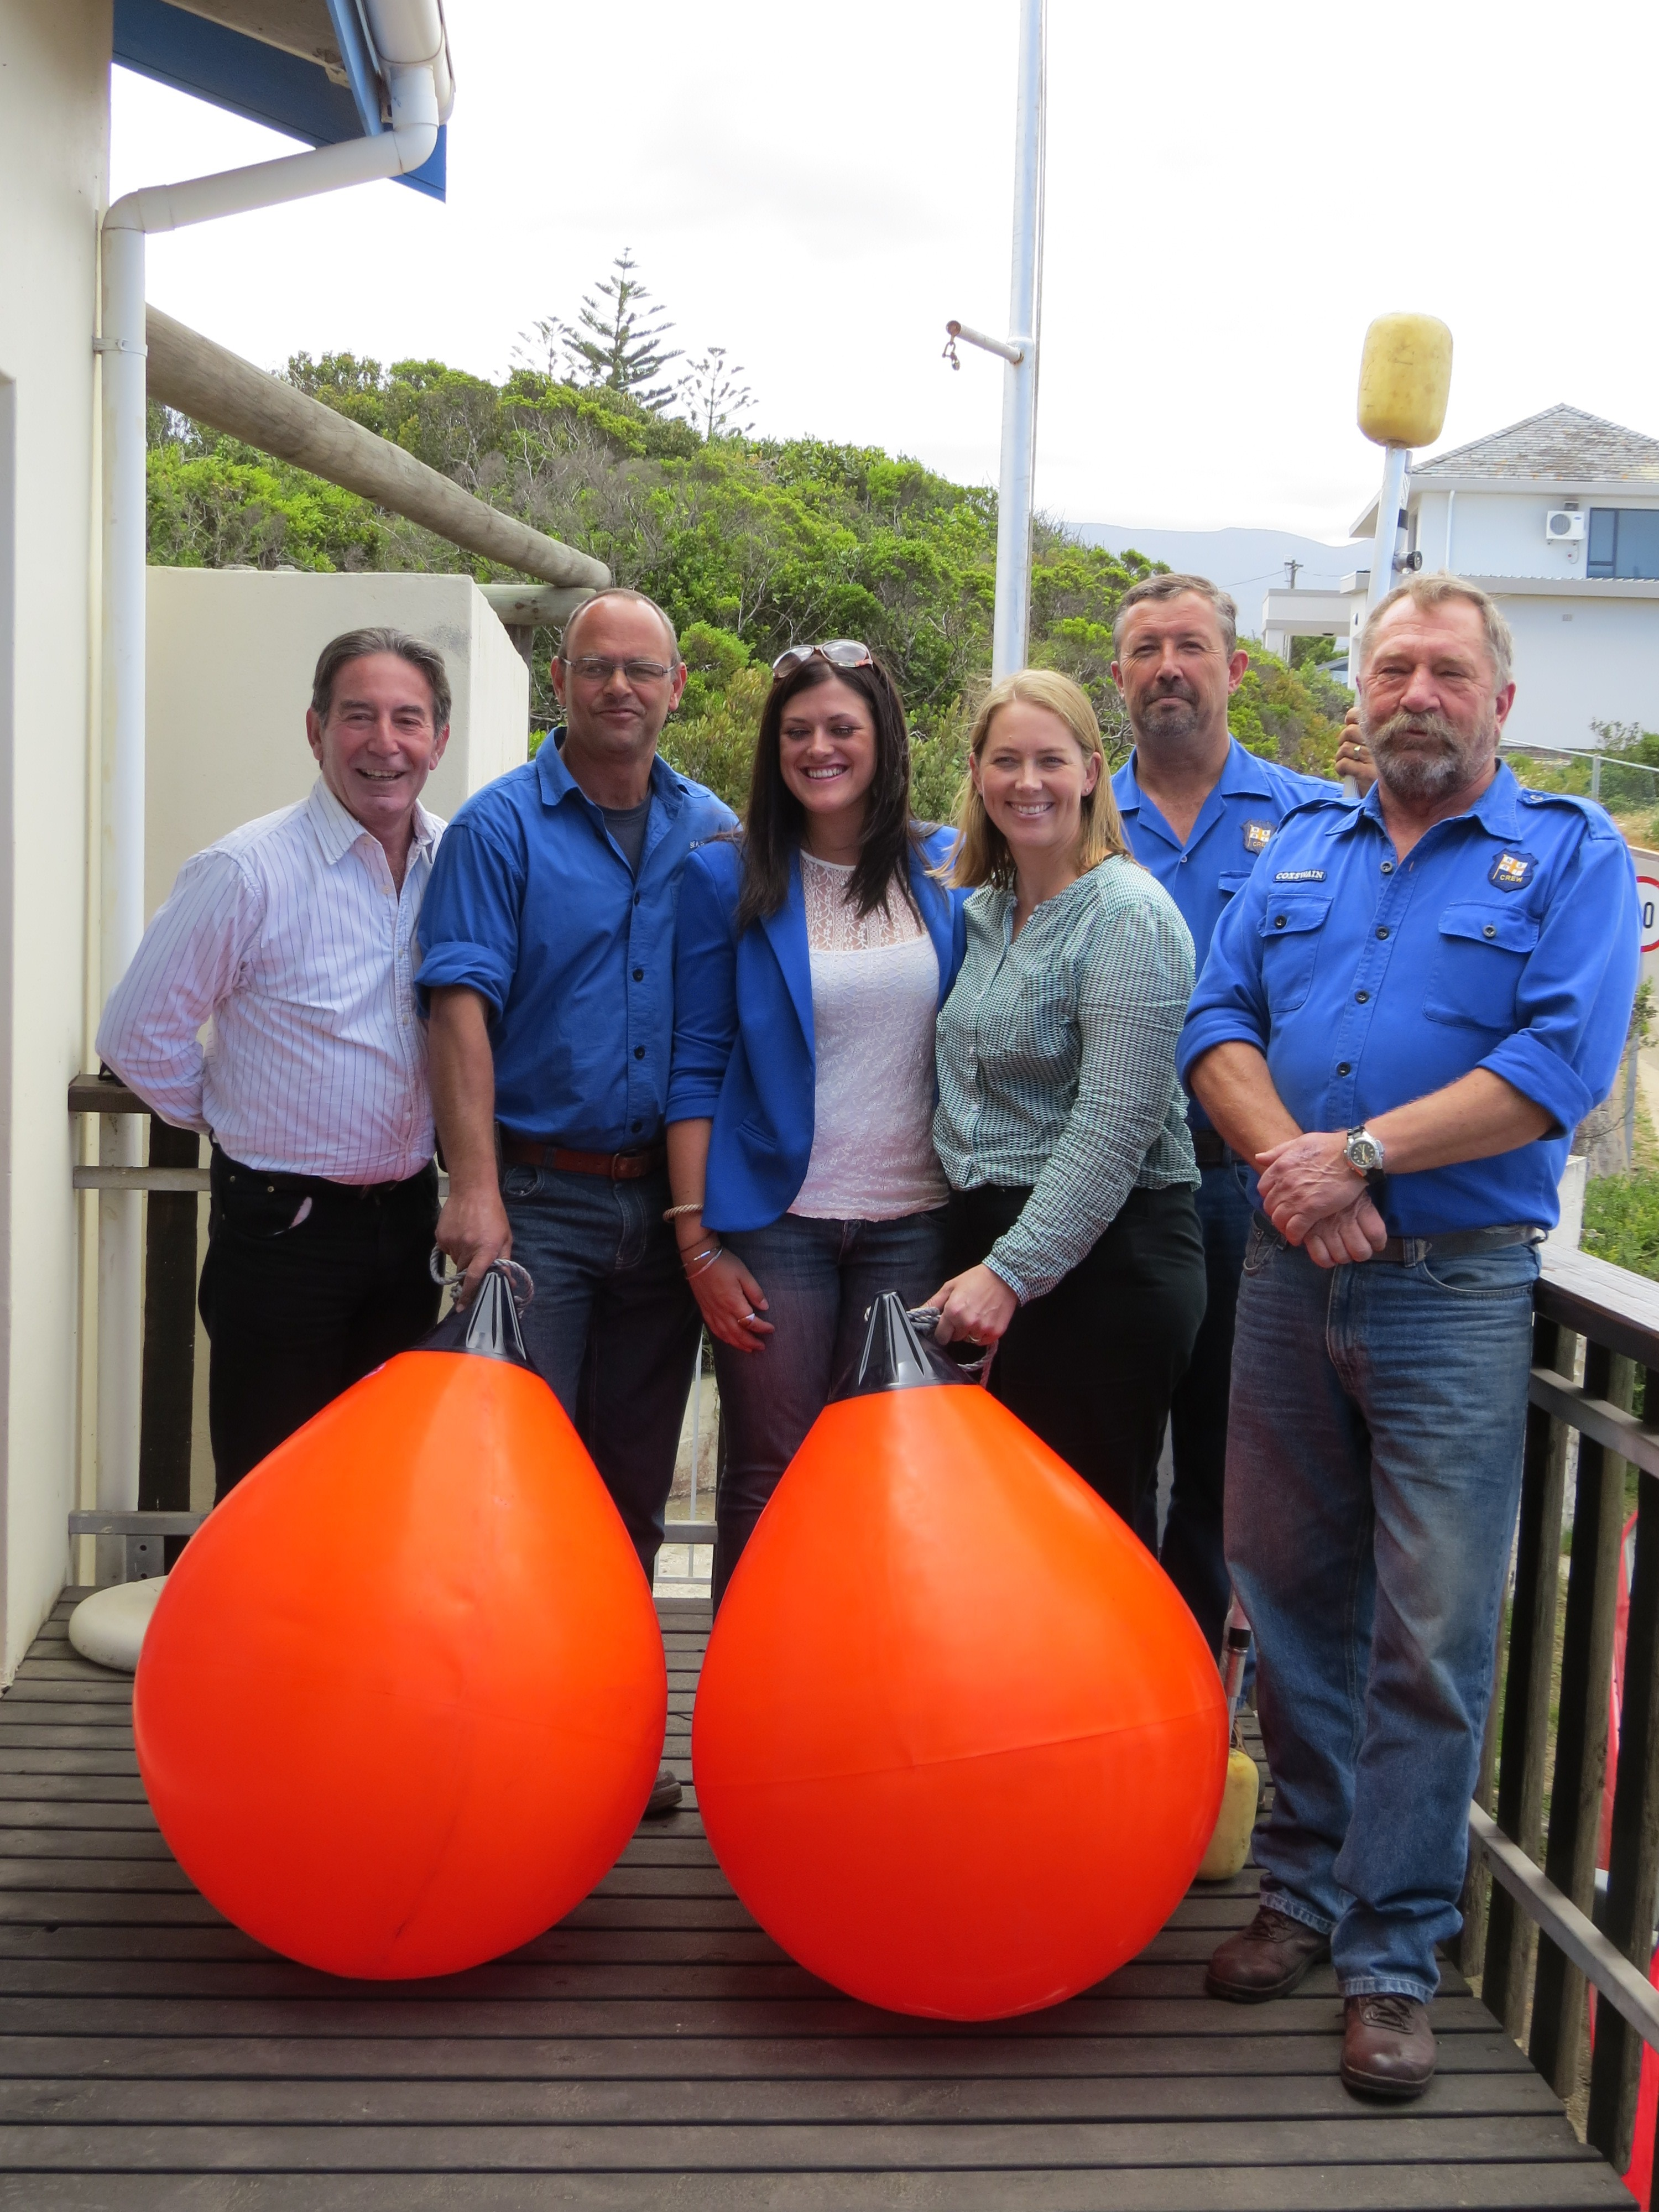 Festival organiser Leon Theron, Distell Events Manager Jeanine Smith and Two Oceans Brand Manager Danelle Kietzmann with volunteers Jean le Roux, Deon Langenhoven and Station Commander Henk Henn